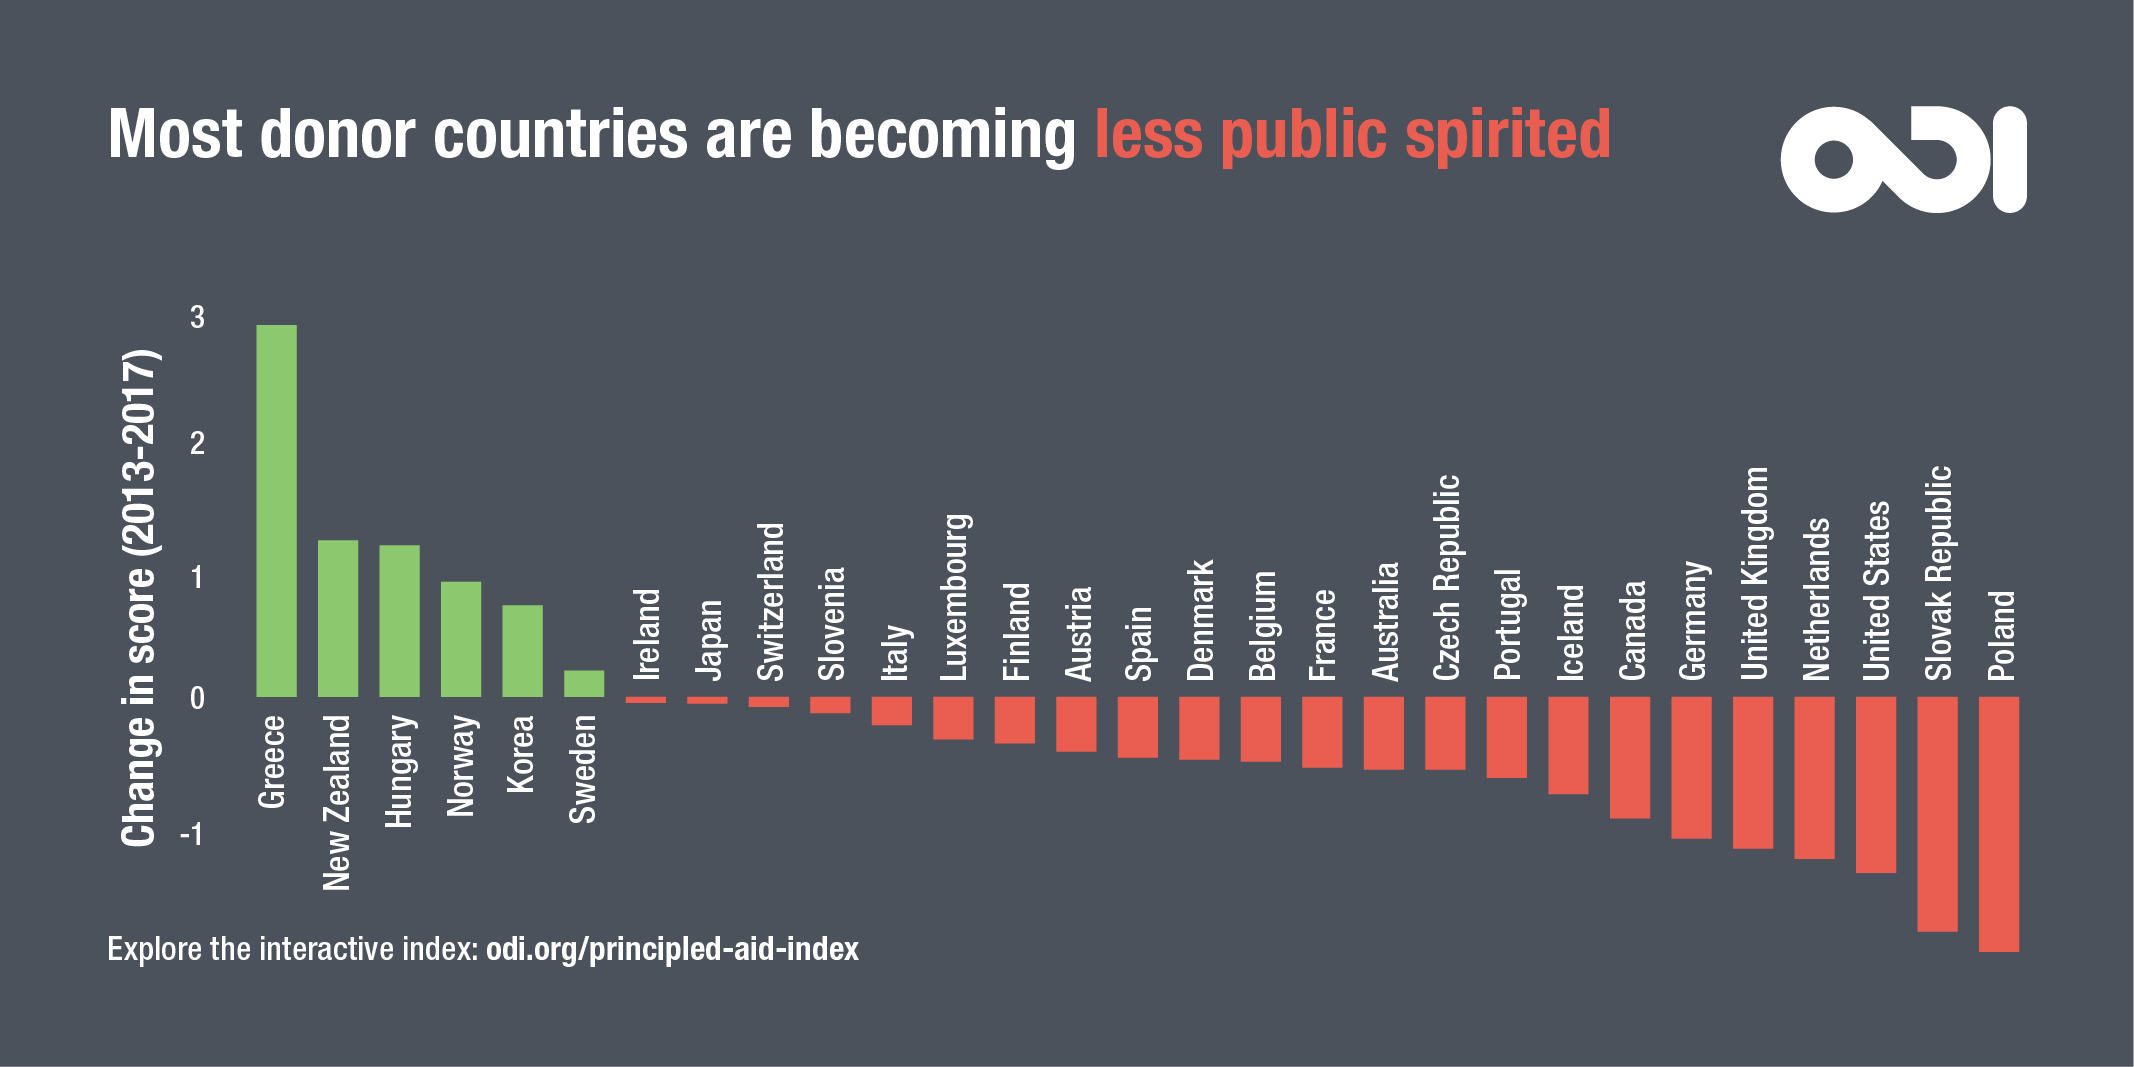 Most donors are becoming less public spirited